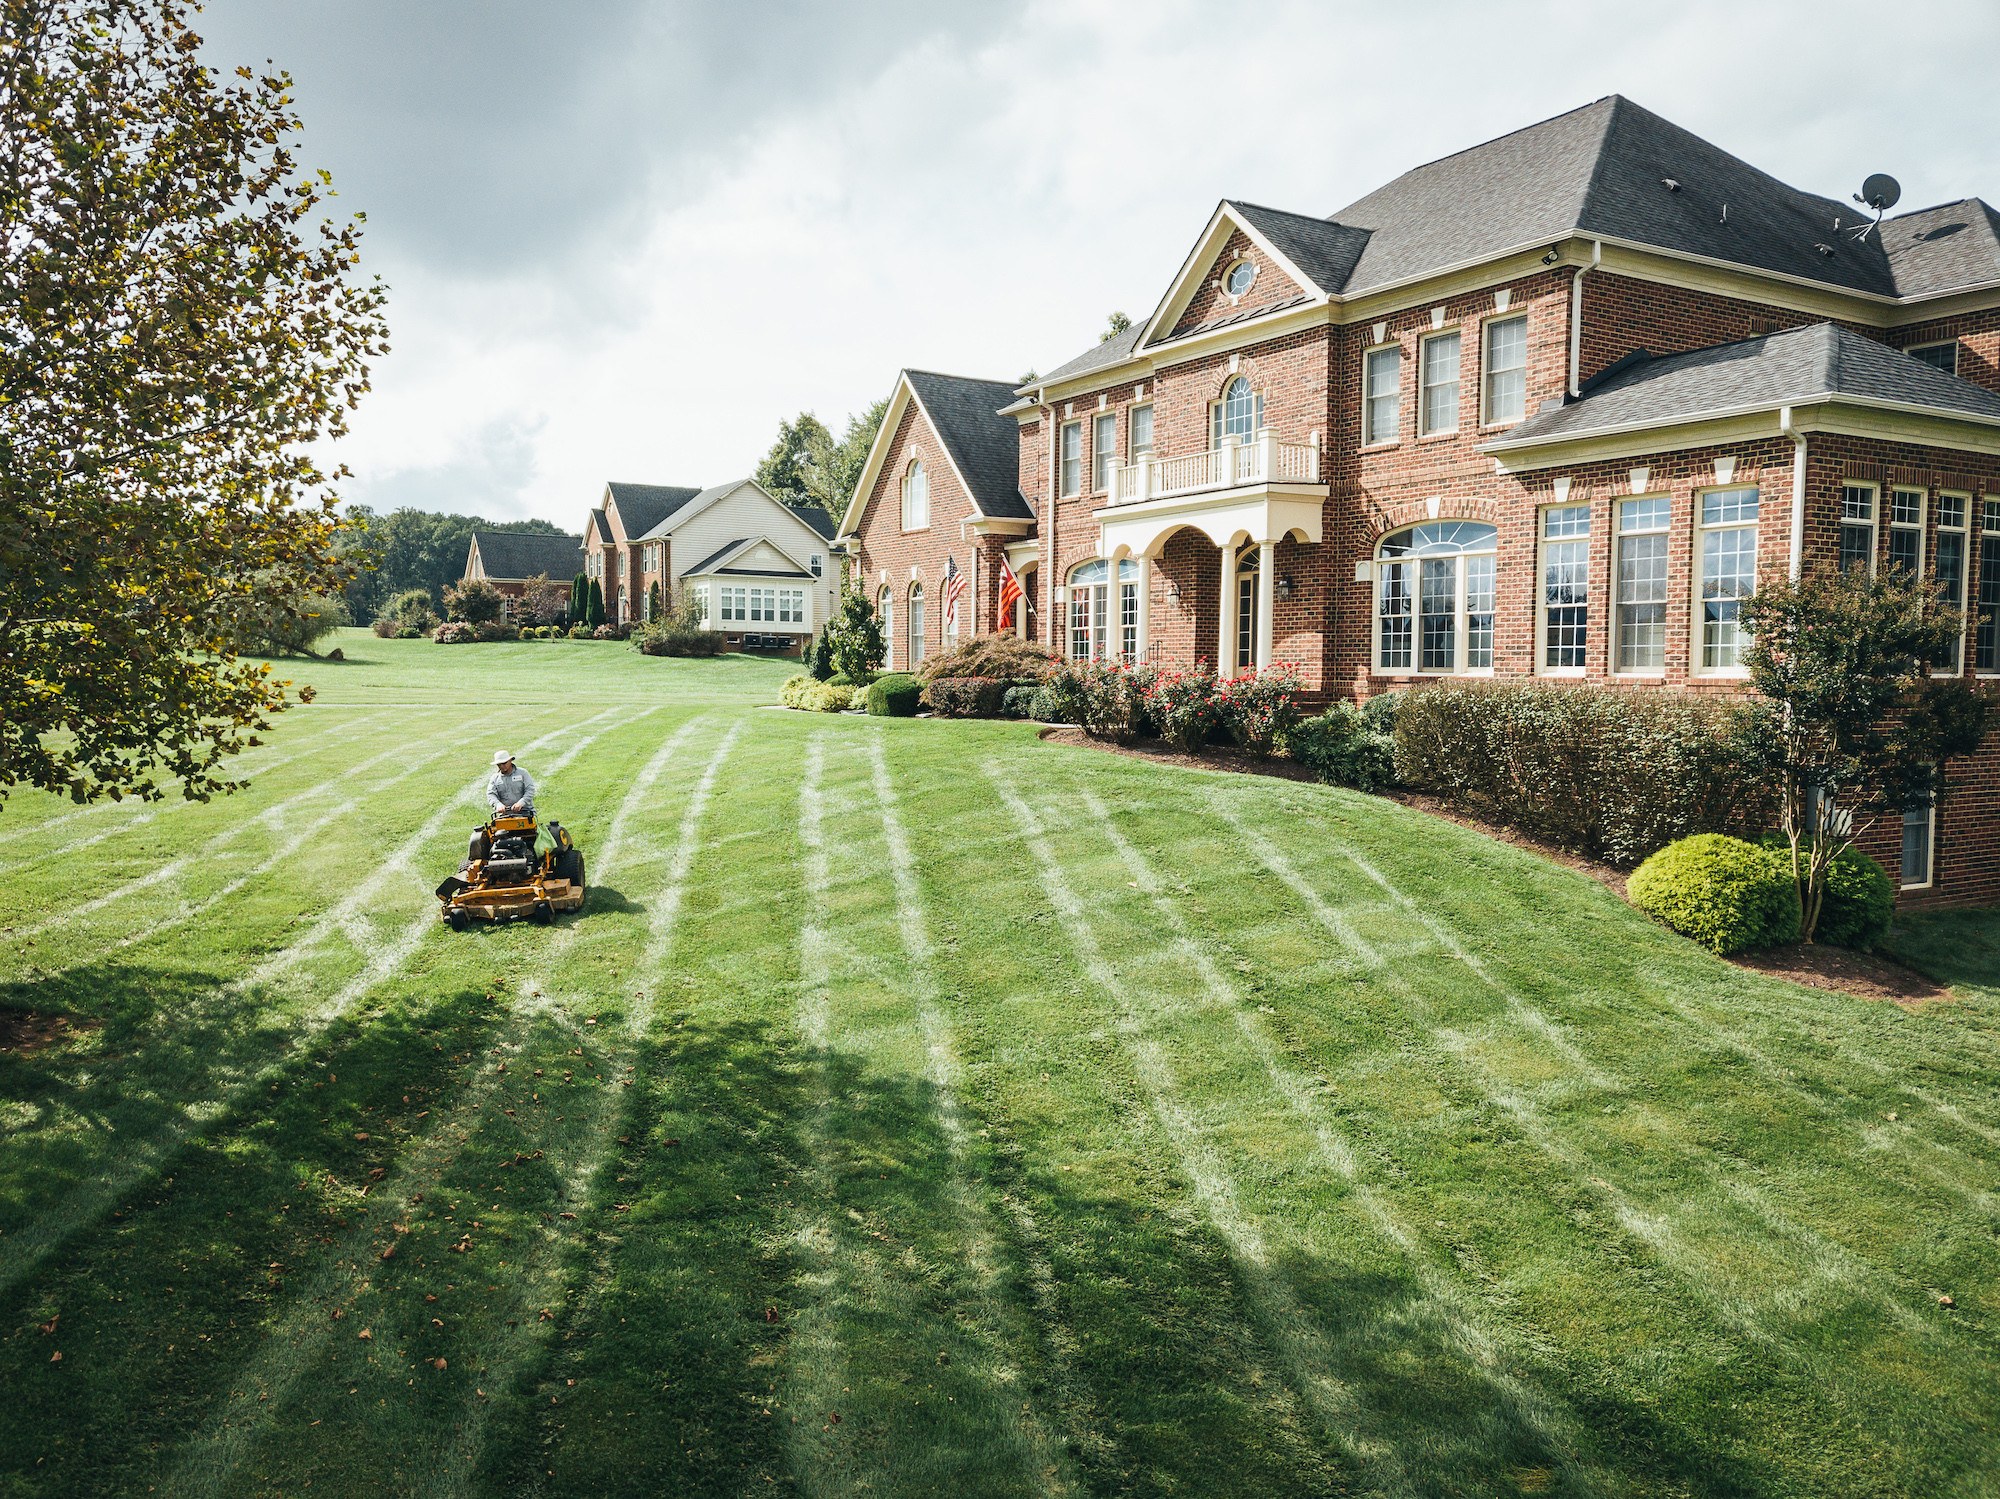 lawn care and mowing services for virginia estates